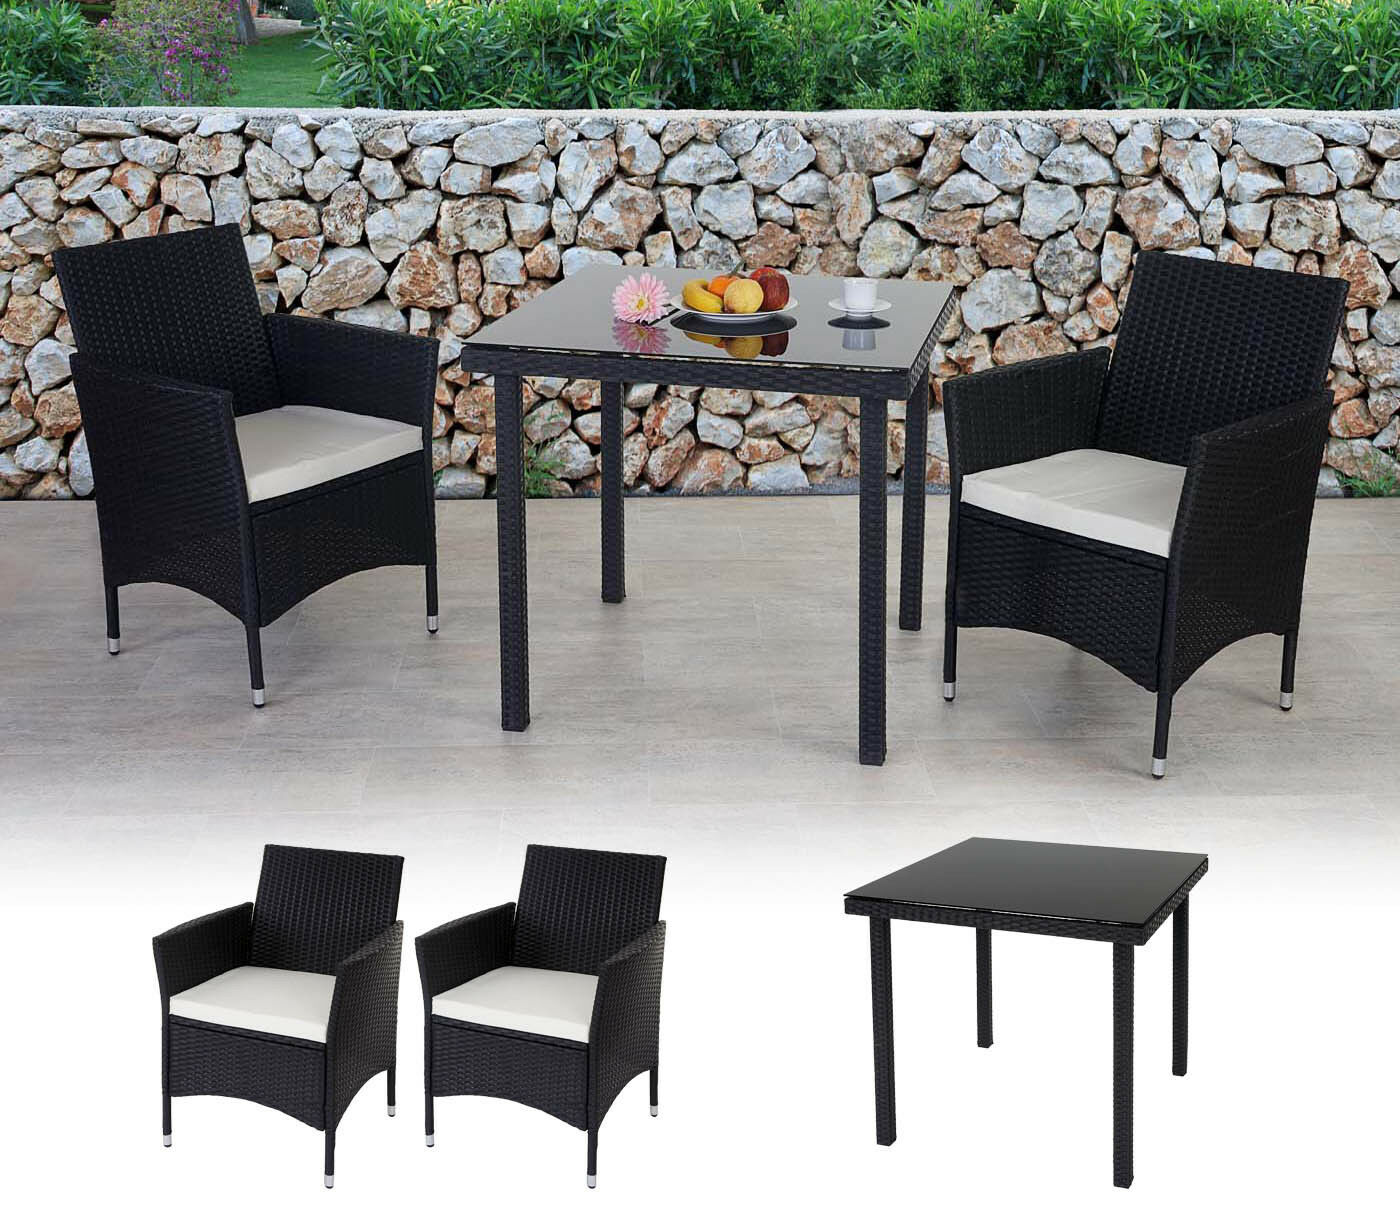 poly rattan garten garnitur modica 2x sessel sitzkissen tisch mit glasplatte eur 395 97. Black Bedroom Furniture Sets. Home Design Ideas